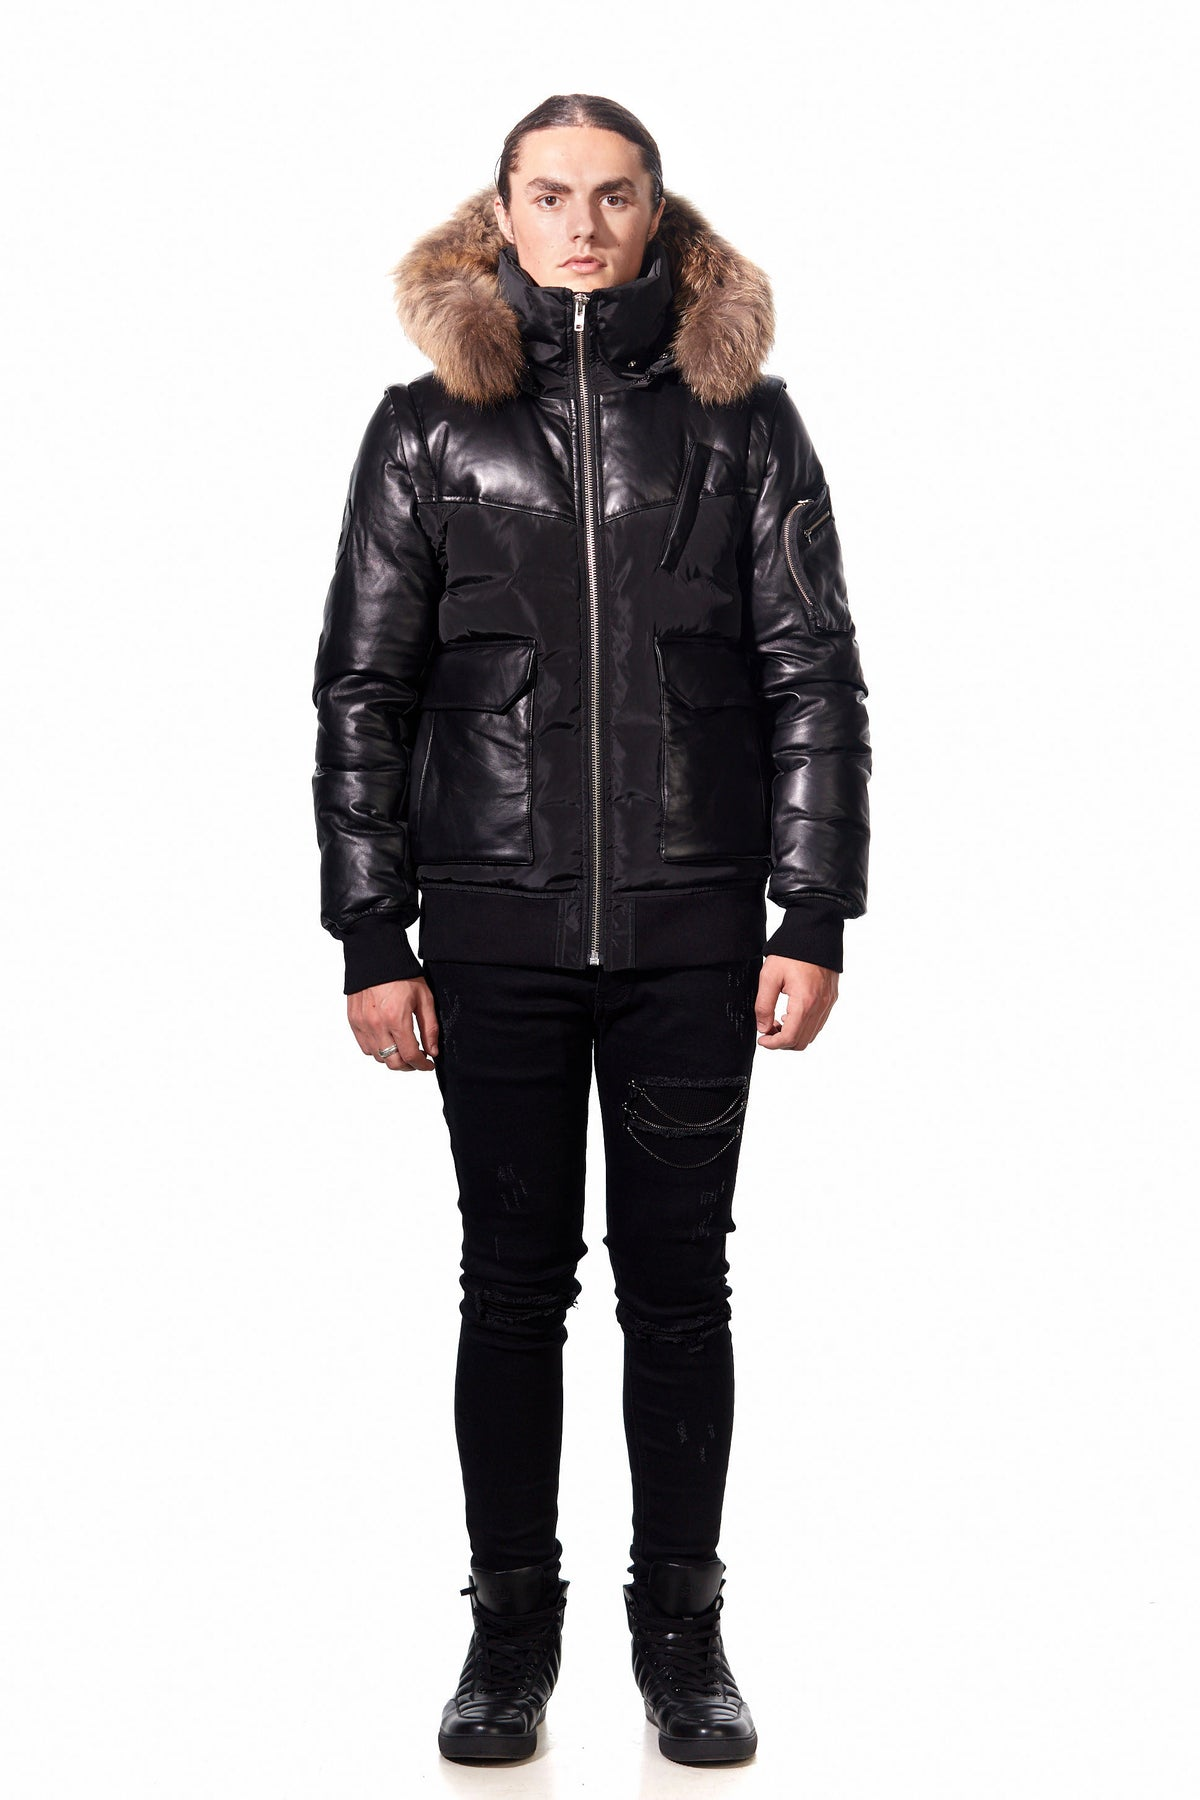 COBALT 2 in 1 LEATHER DOWN JACKET